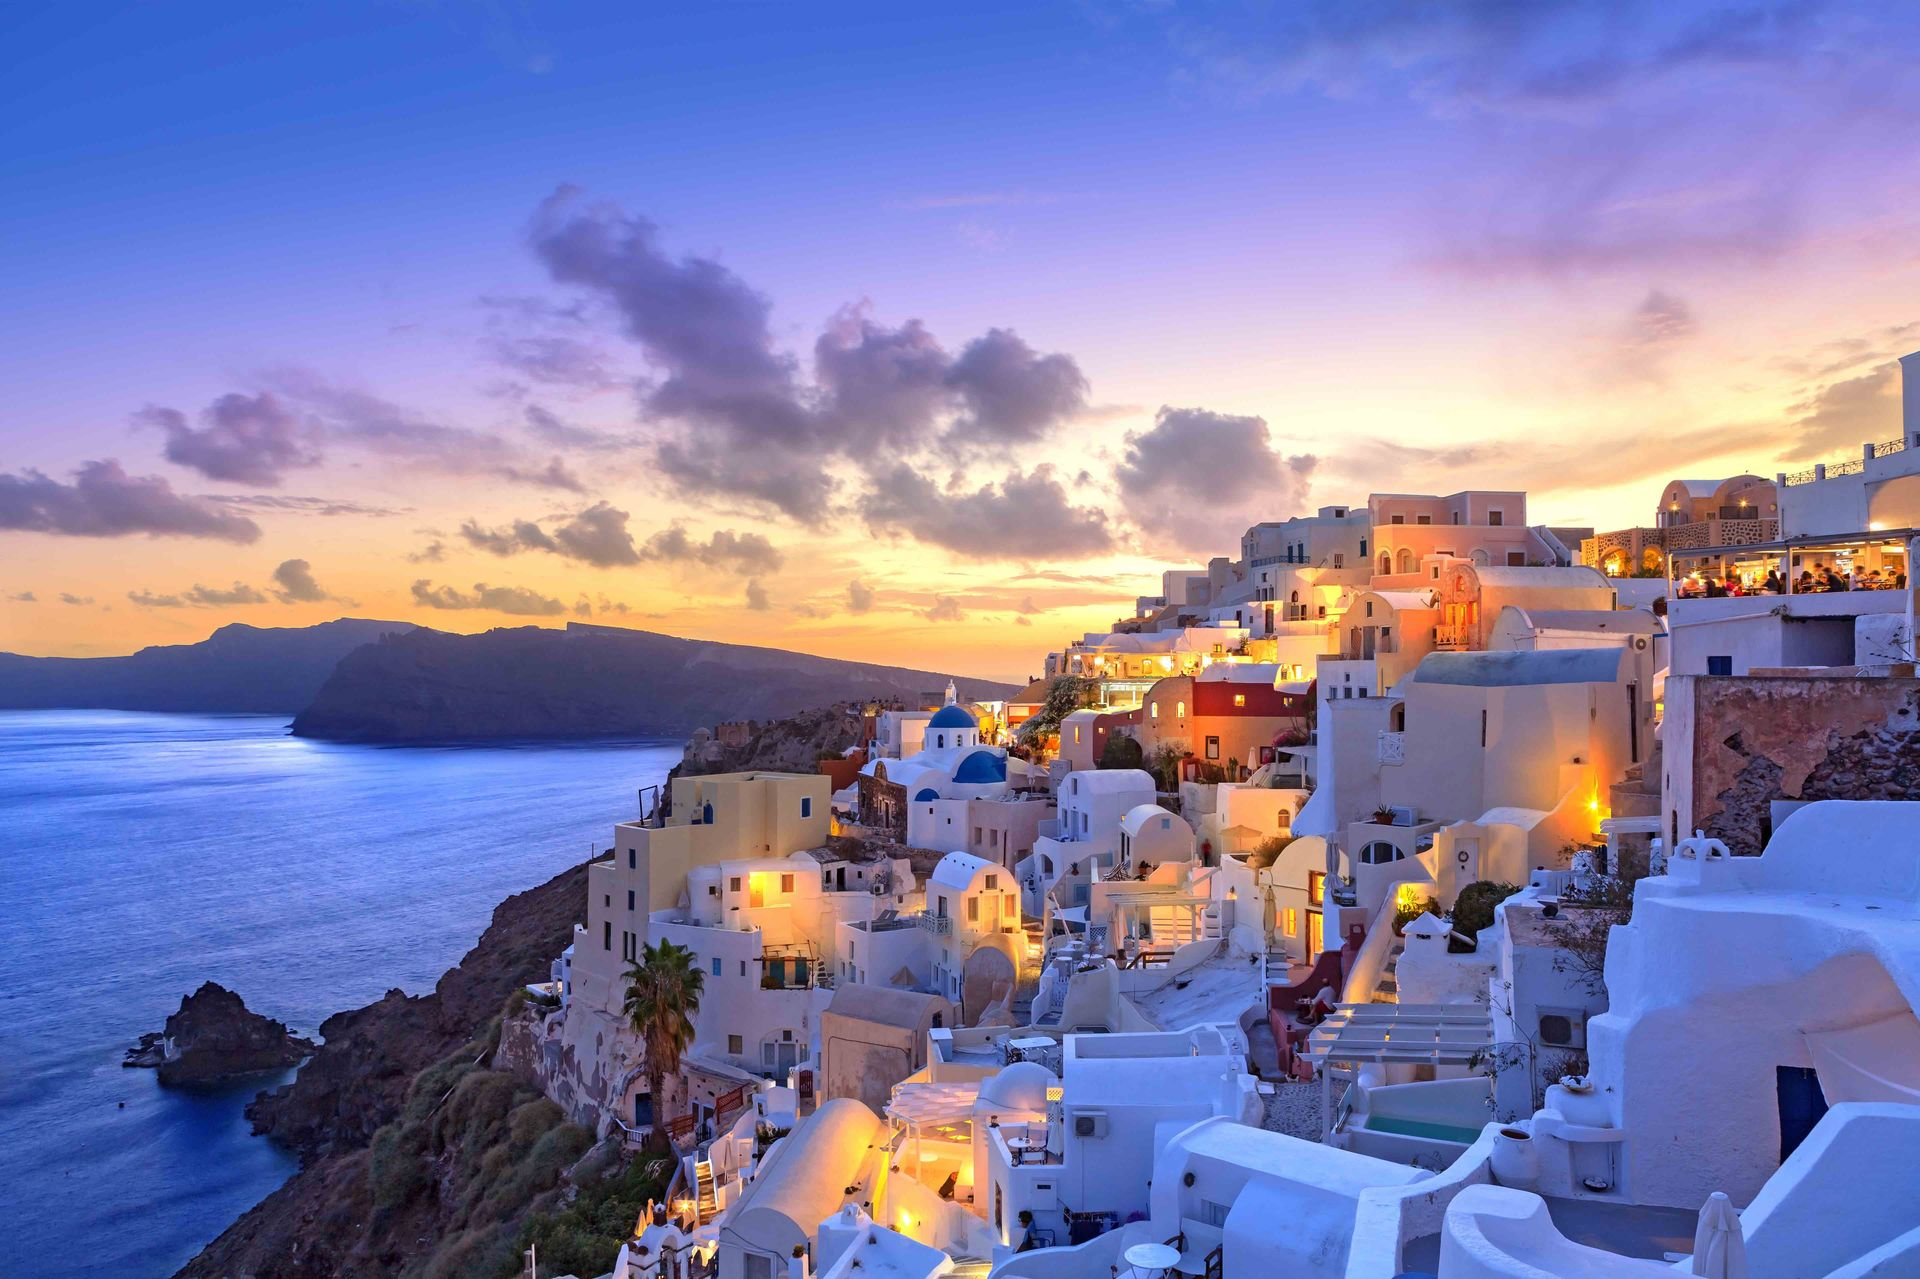 Santorini-sunset-at-dawn-Greece-Sothebys-International-Realty